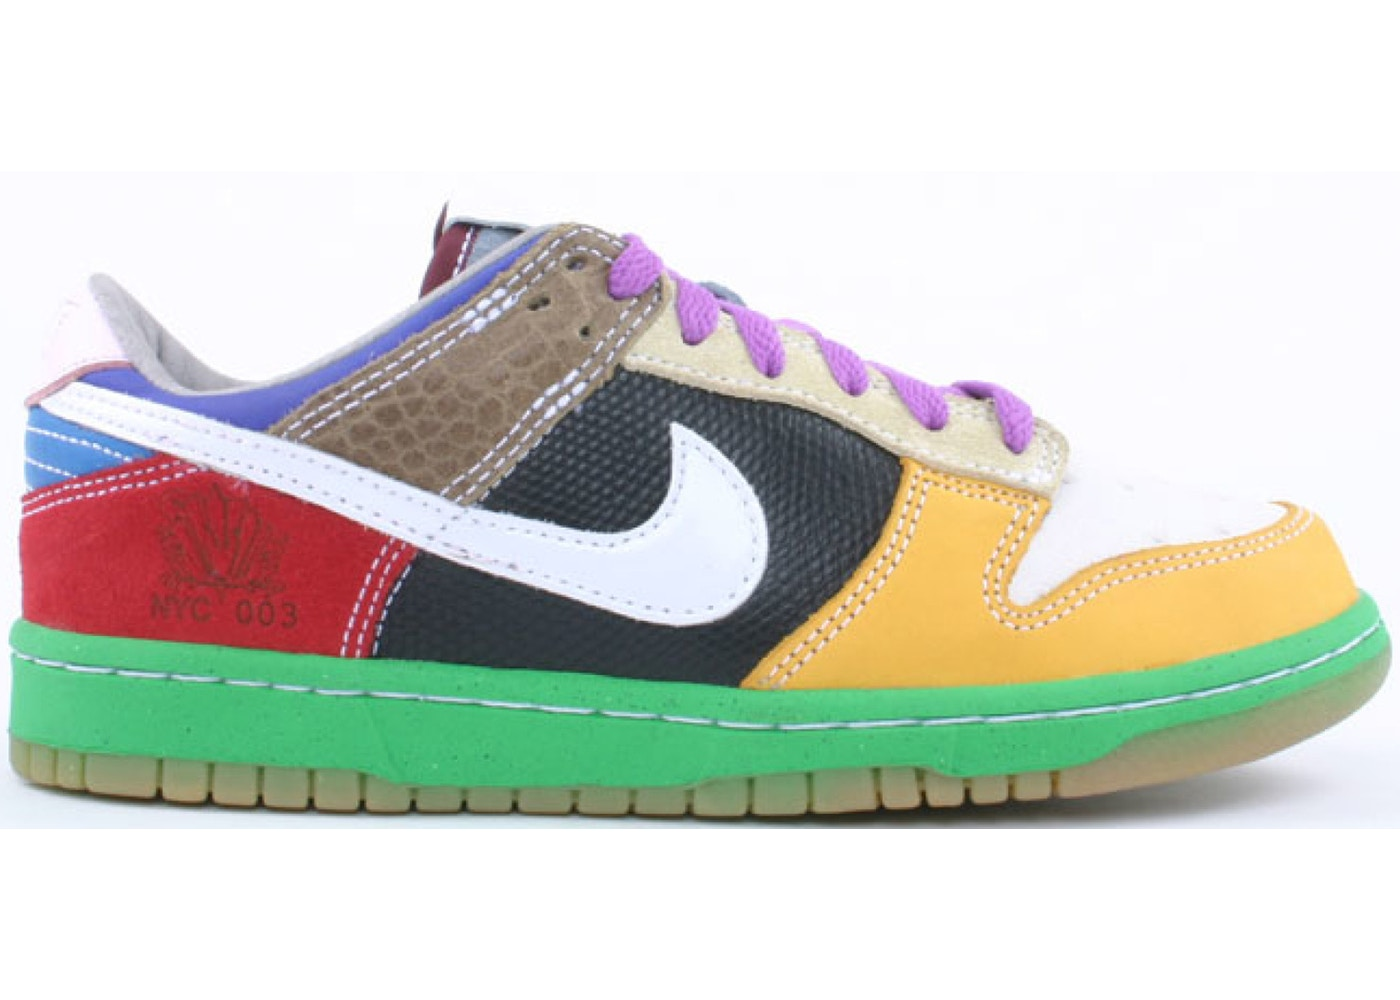 Nike Dunk Low Cowboy (Sole Collector)